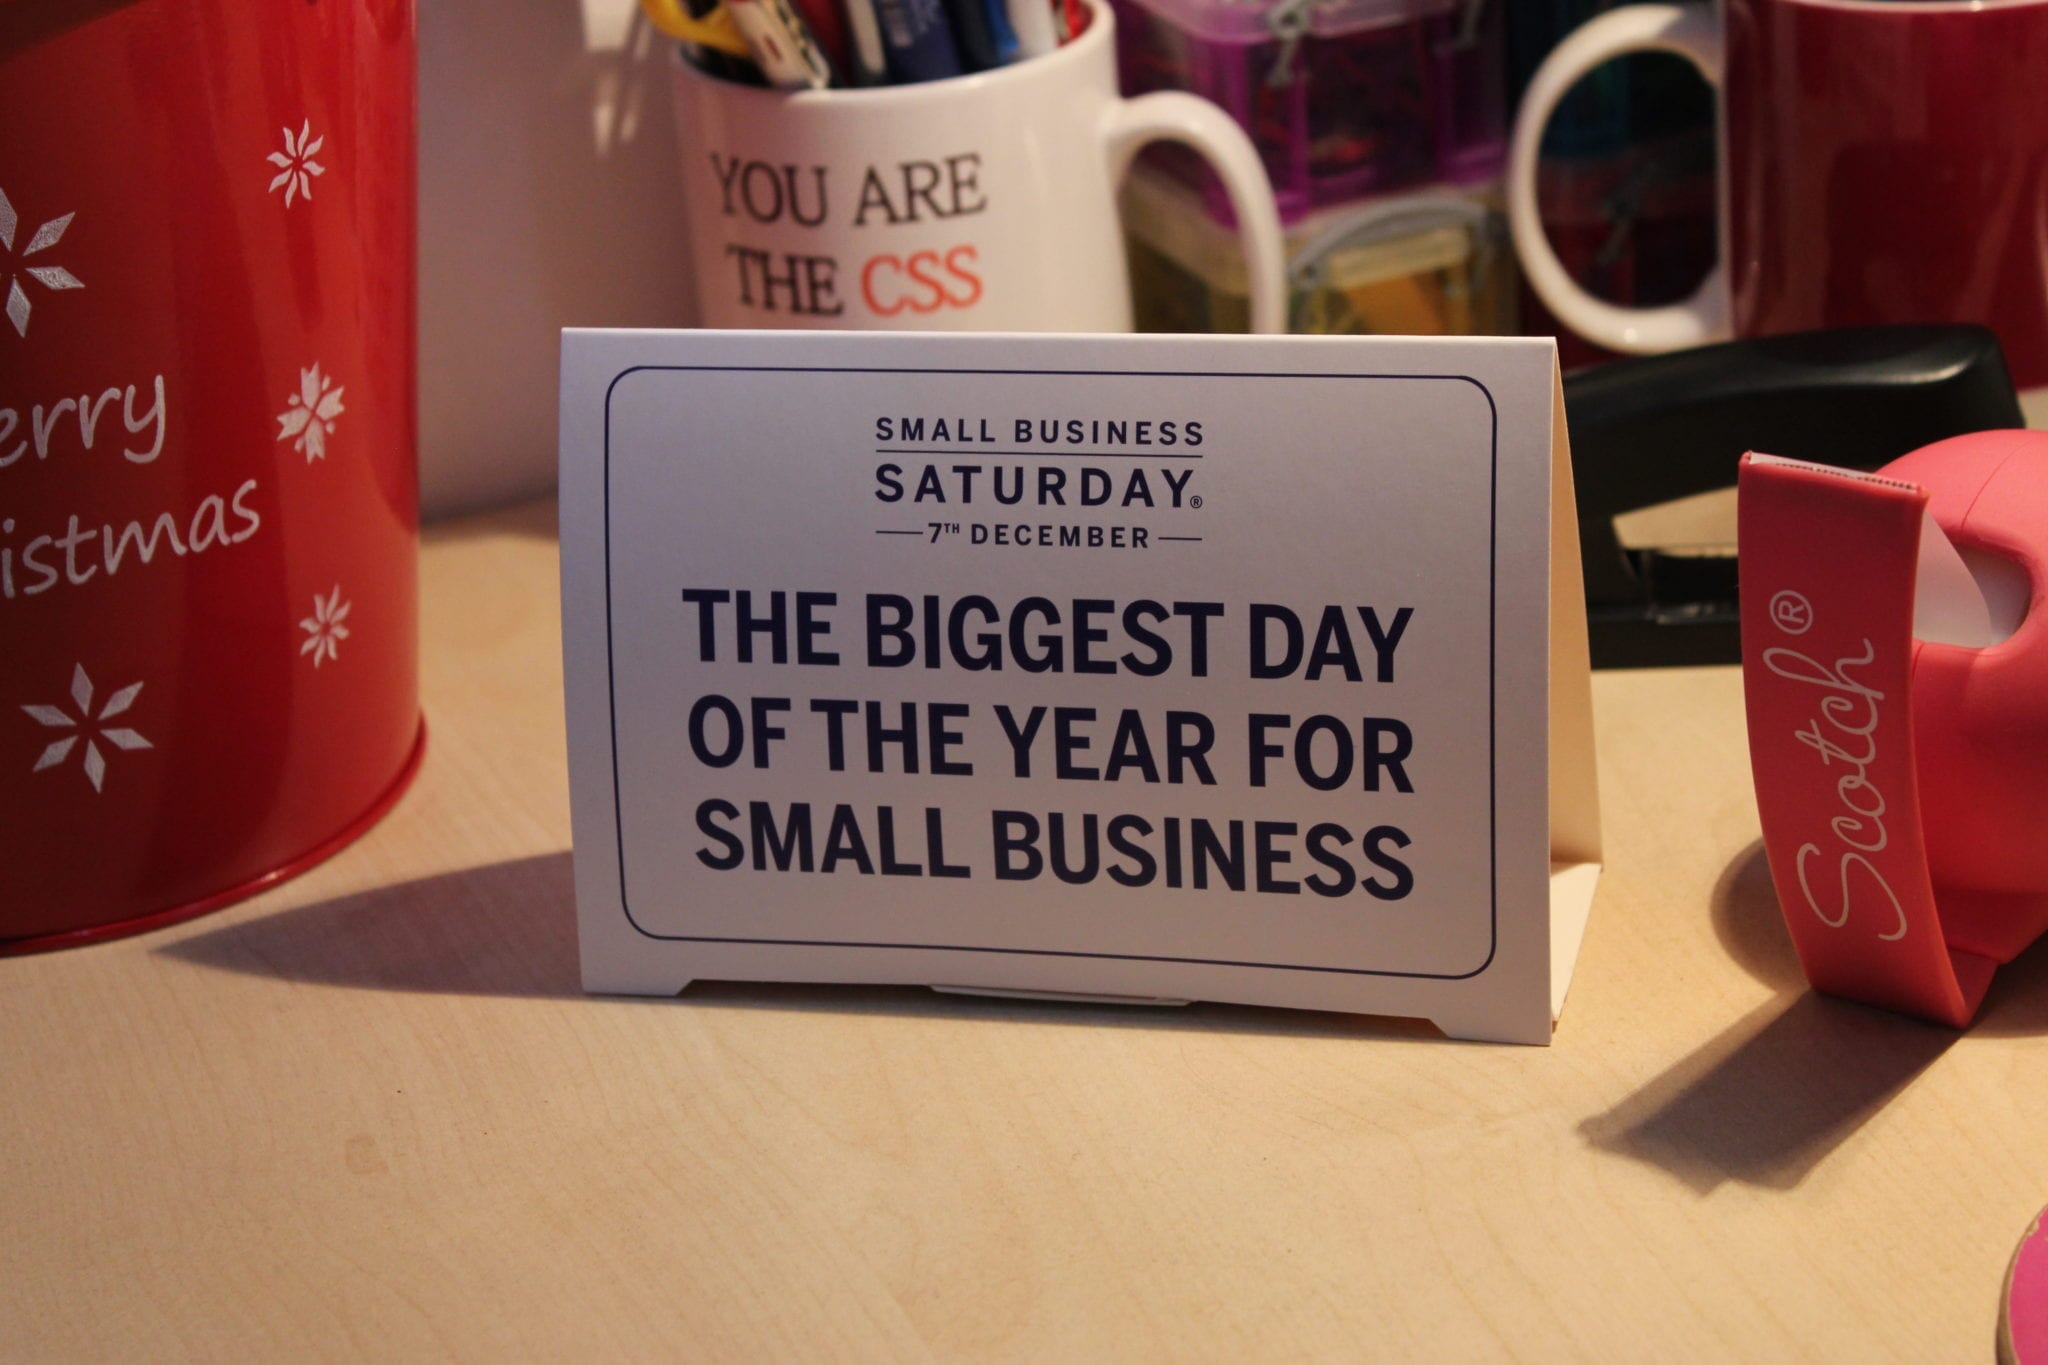 small-business-saturday-special-offers.jpg